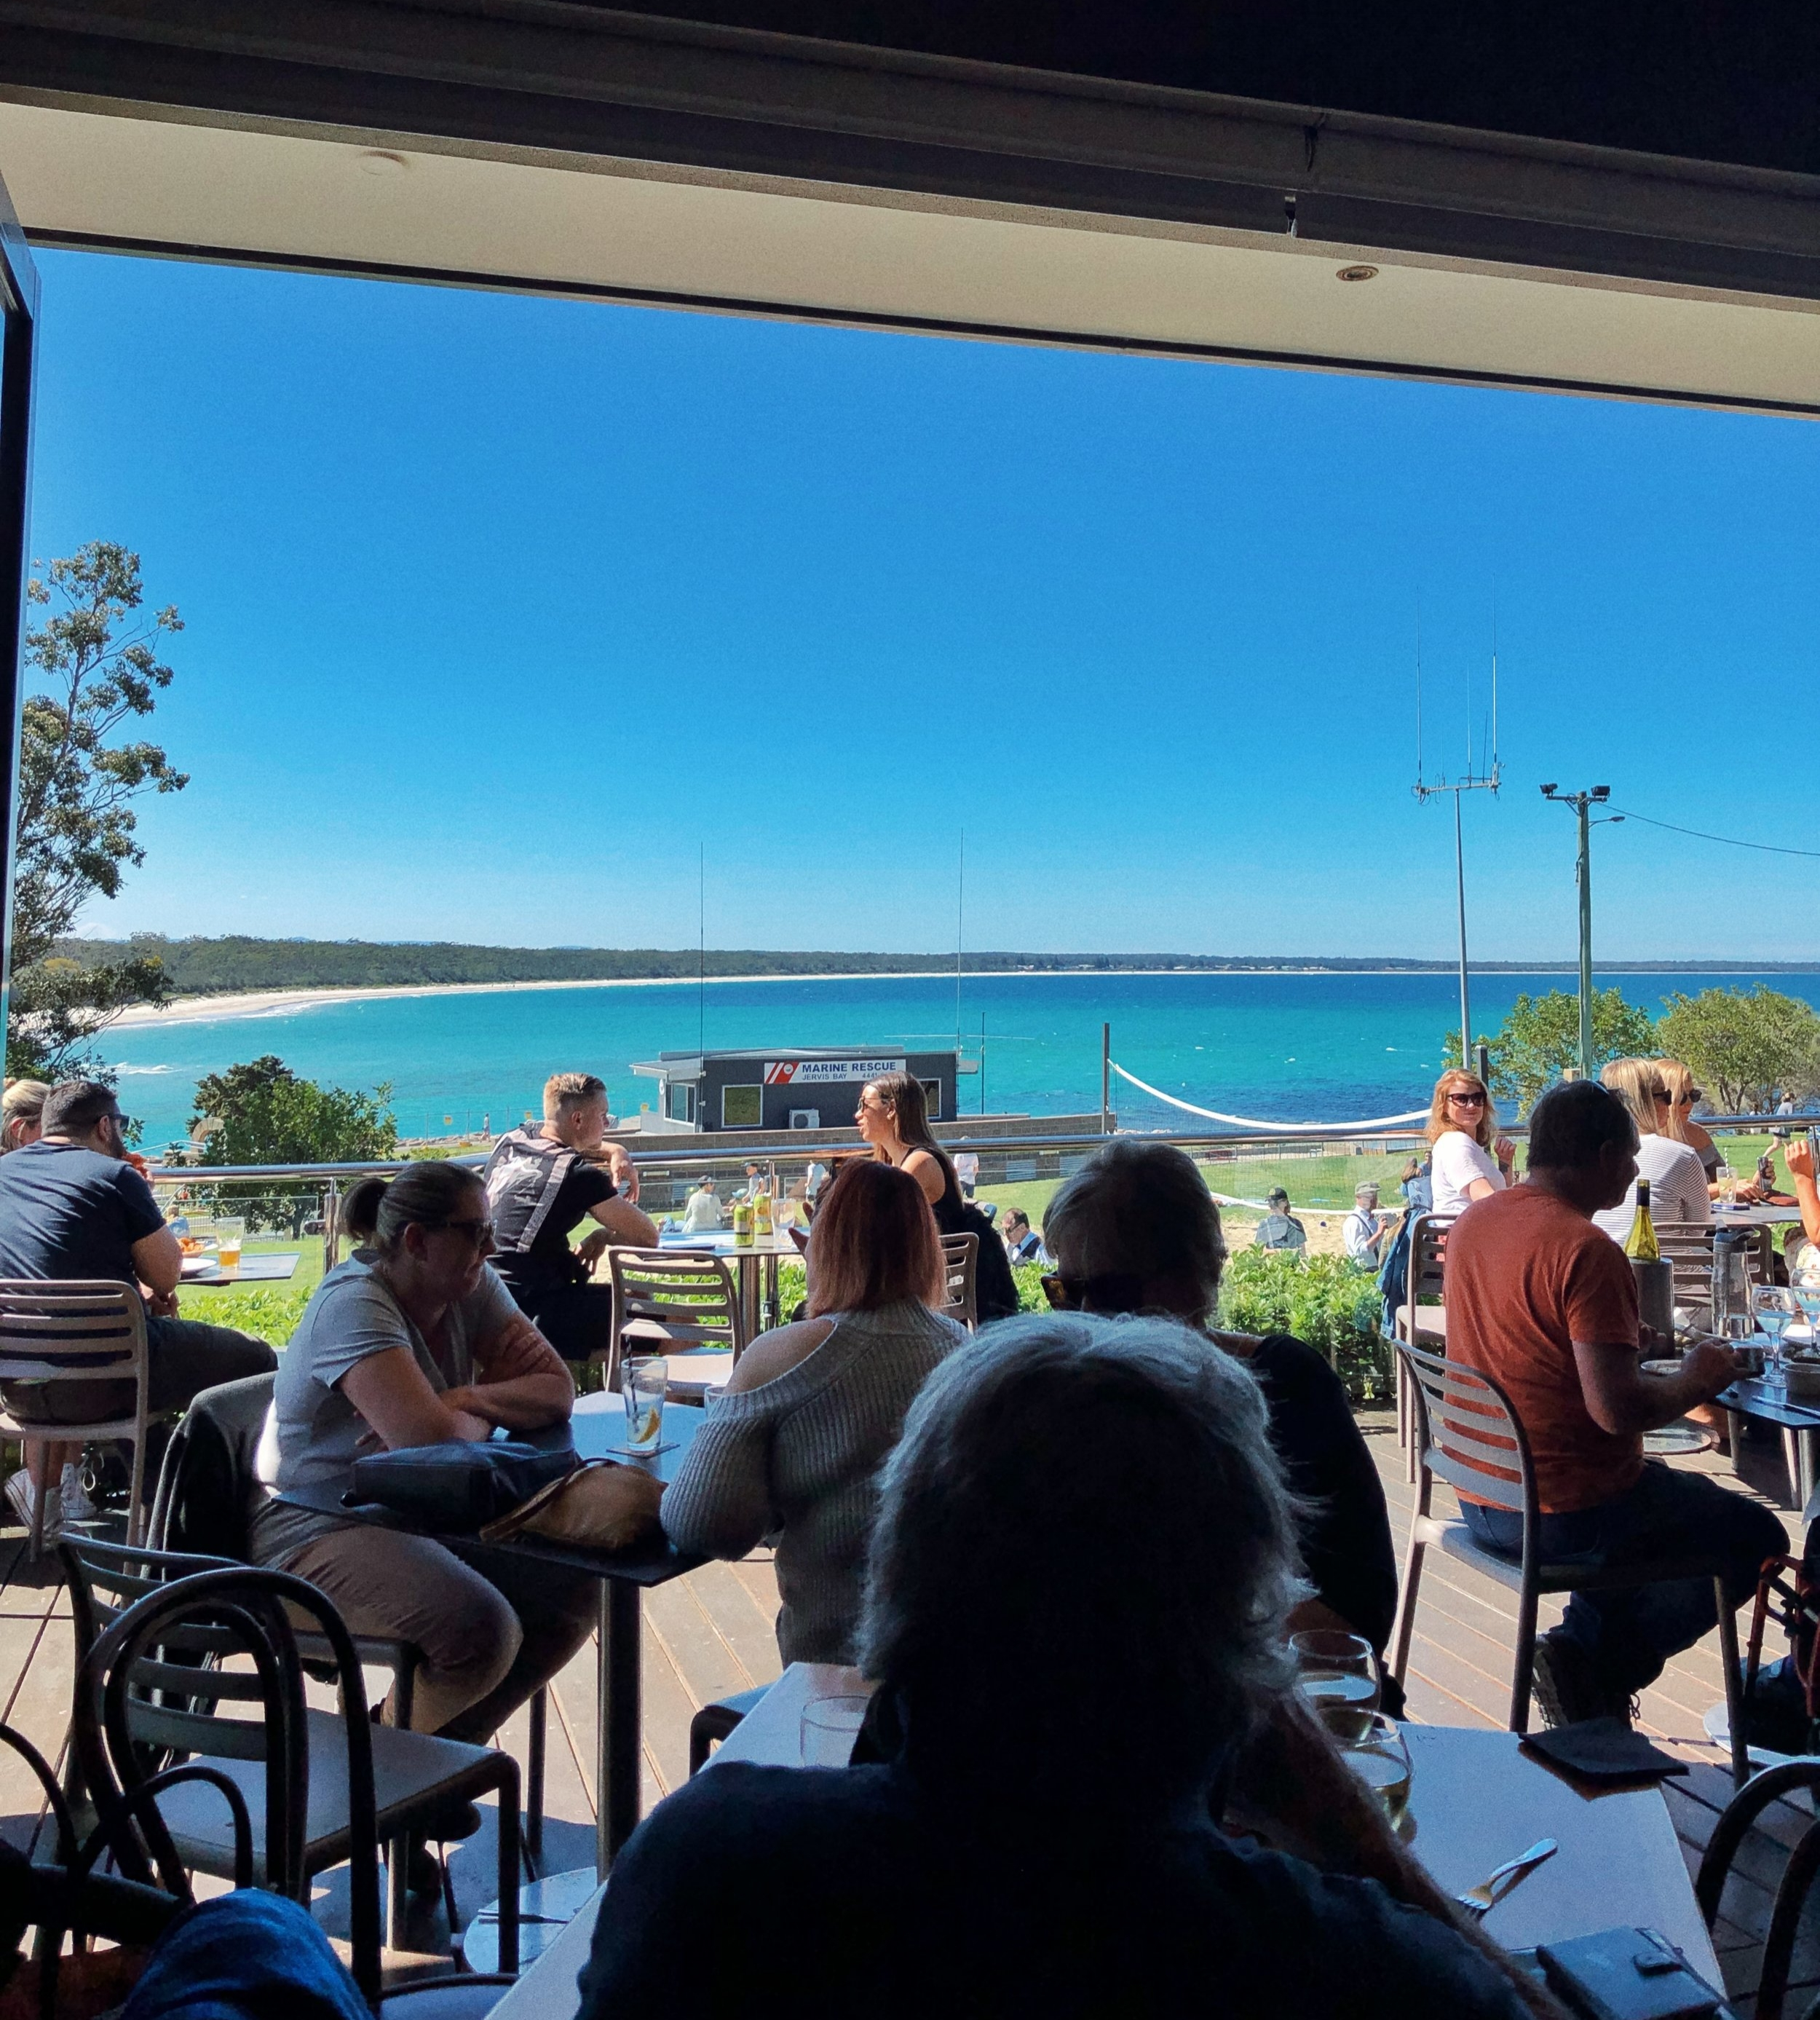 The view from Huskisson's restaurant